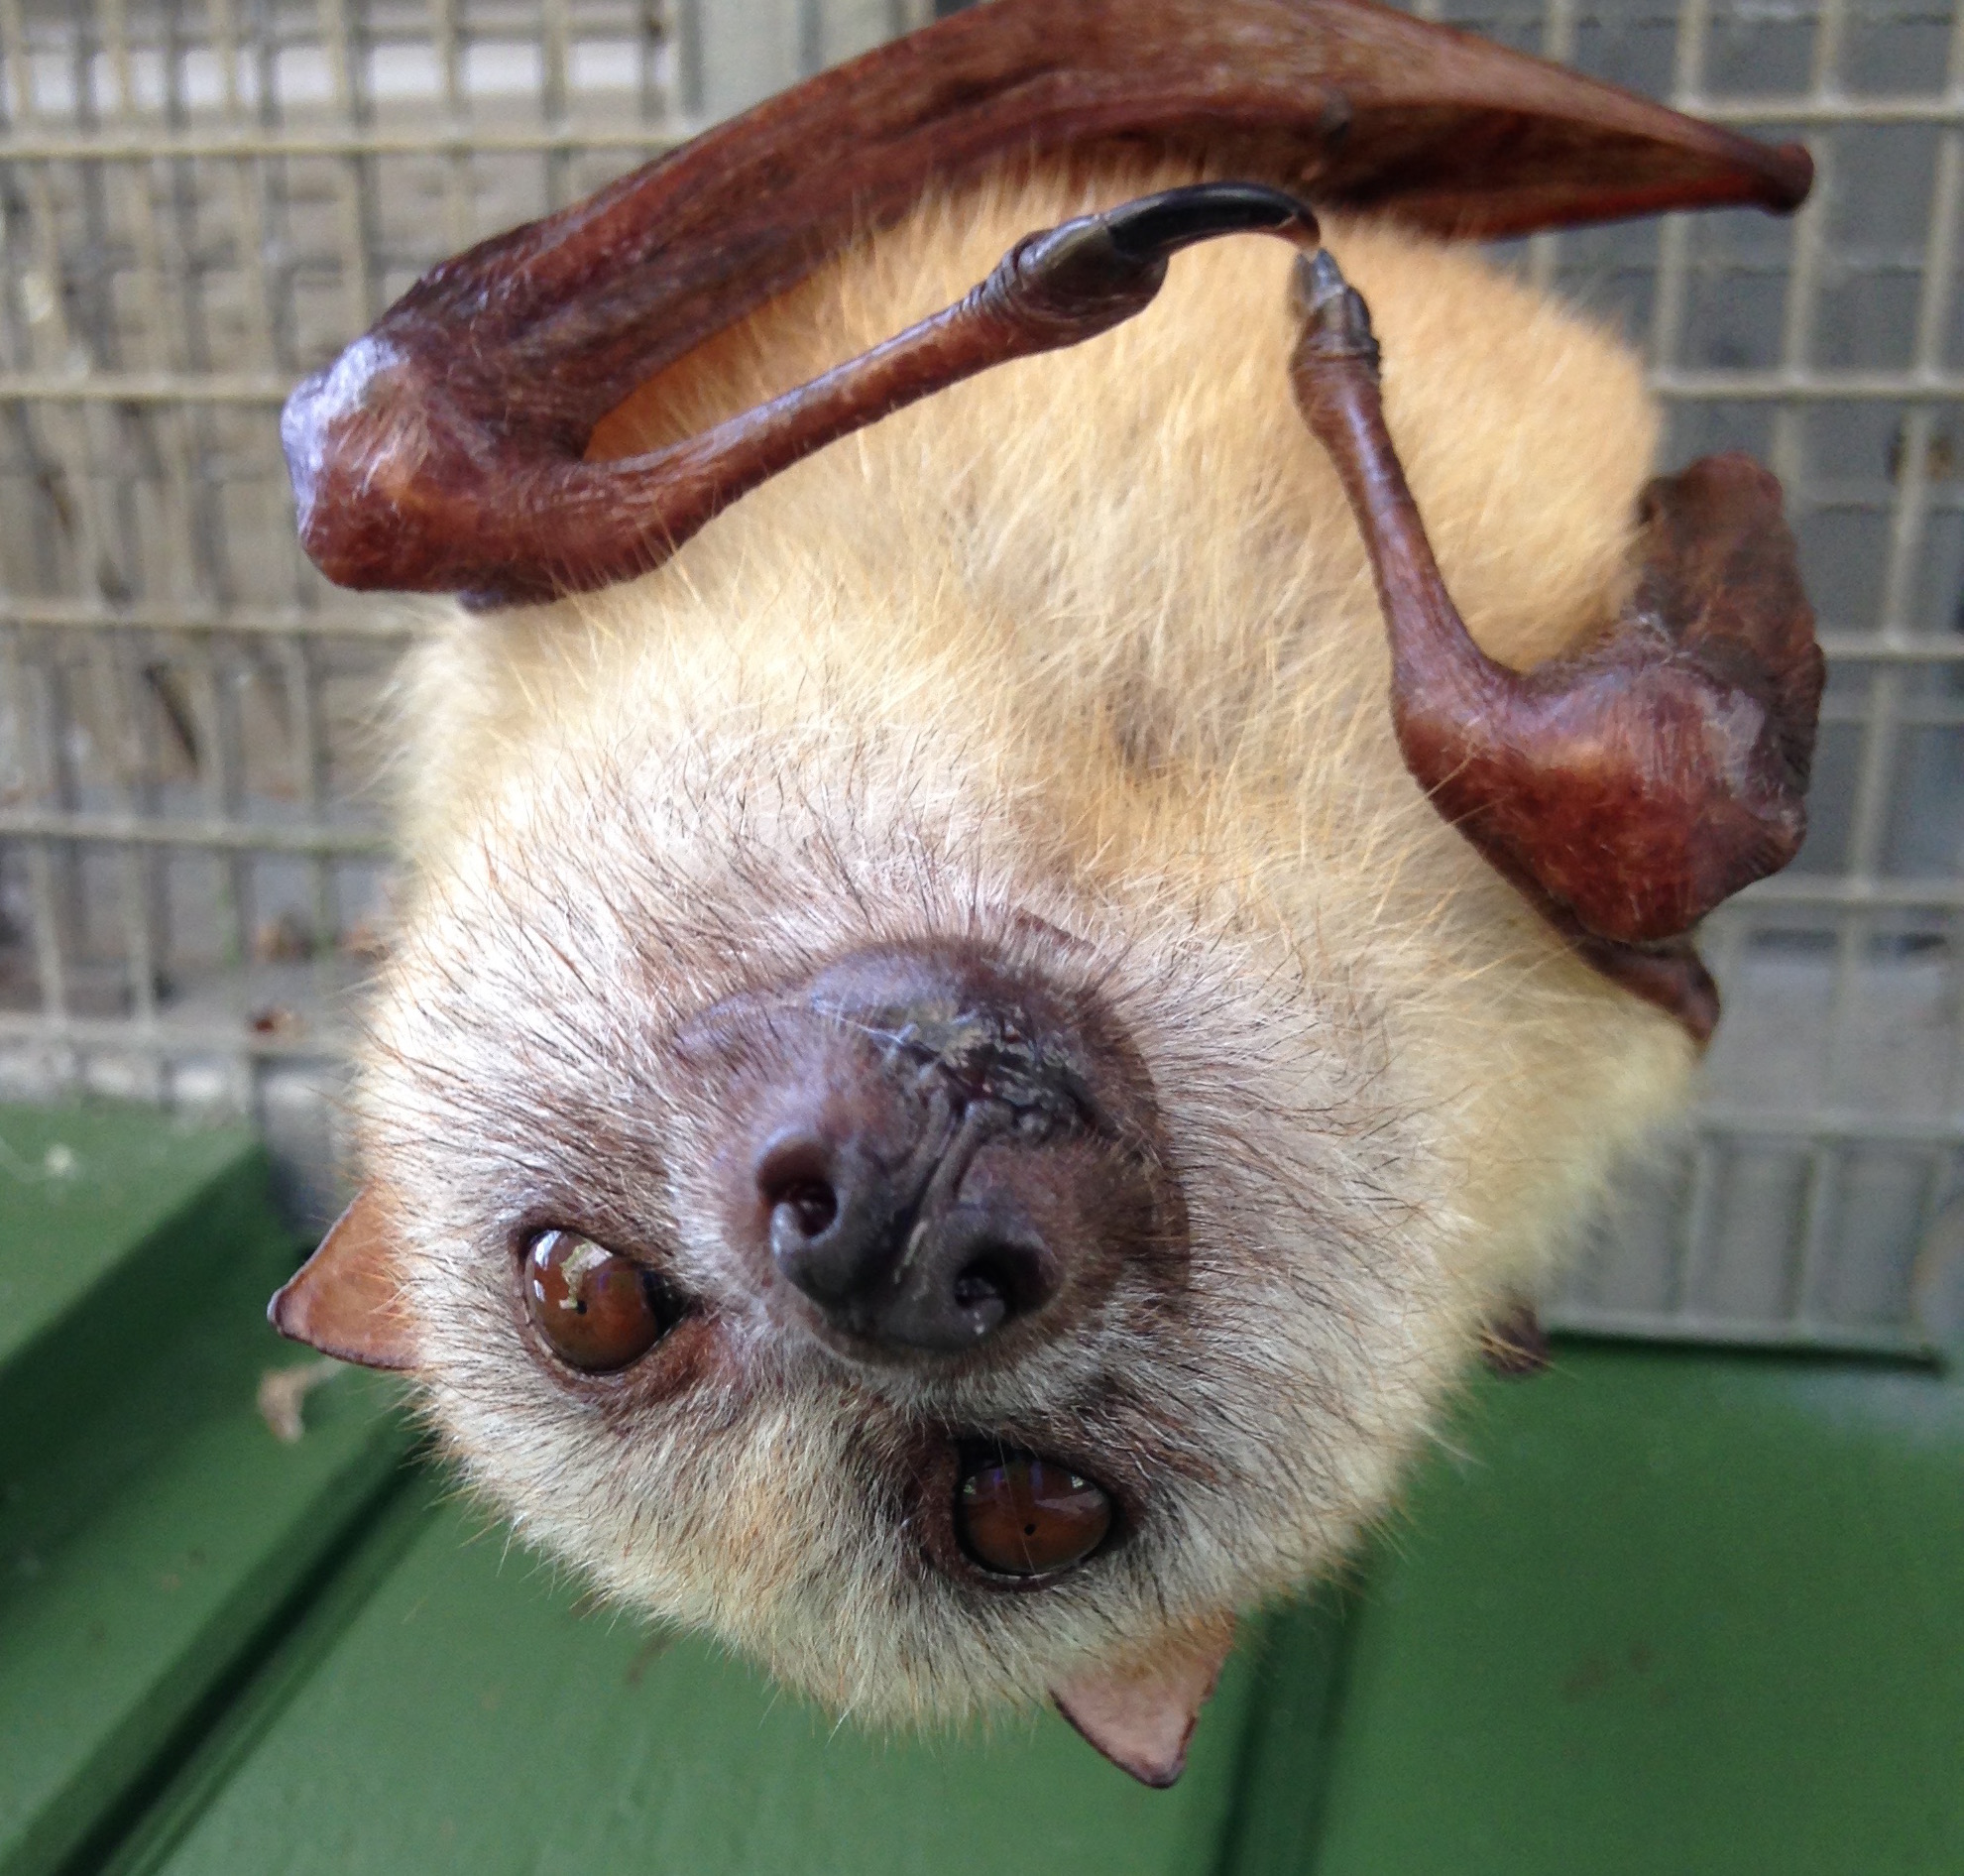 No, Bats Do Not Make Good Pets – Koryos Writes